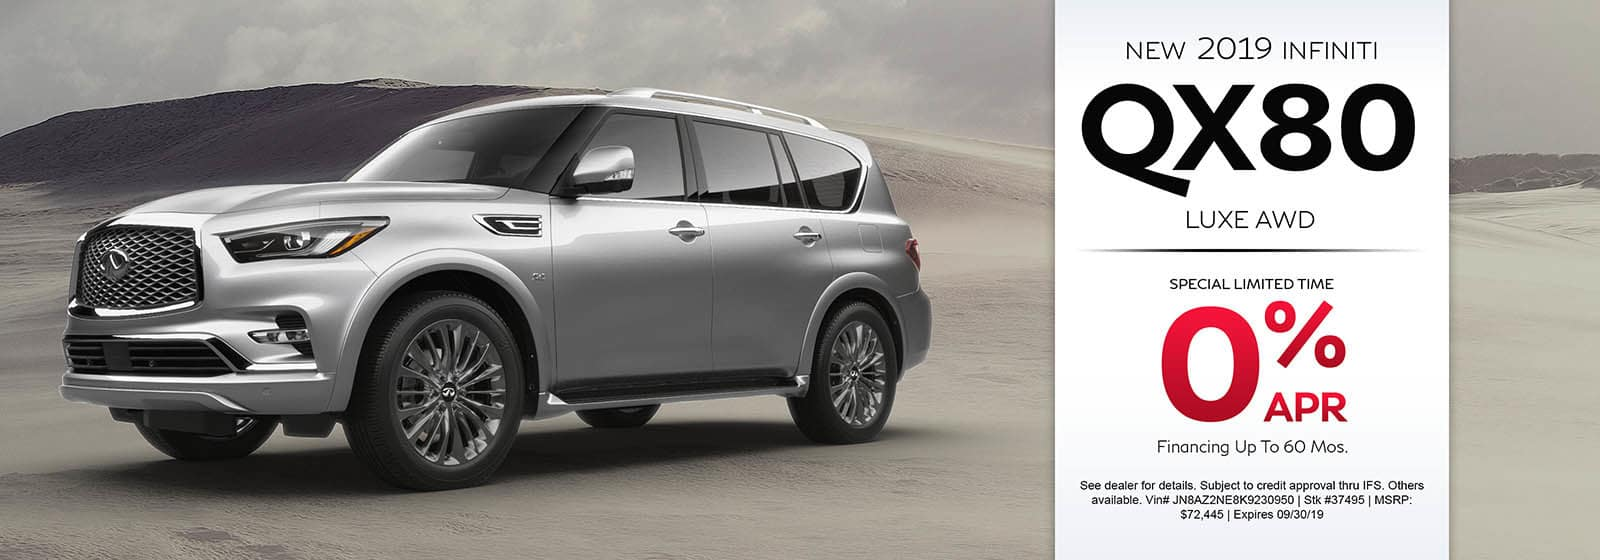 2019 INFINITI QX80 Luxe AWD | Get special 0% APR financing for up to 60 months